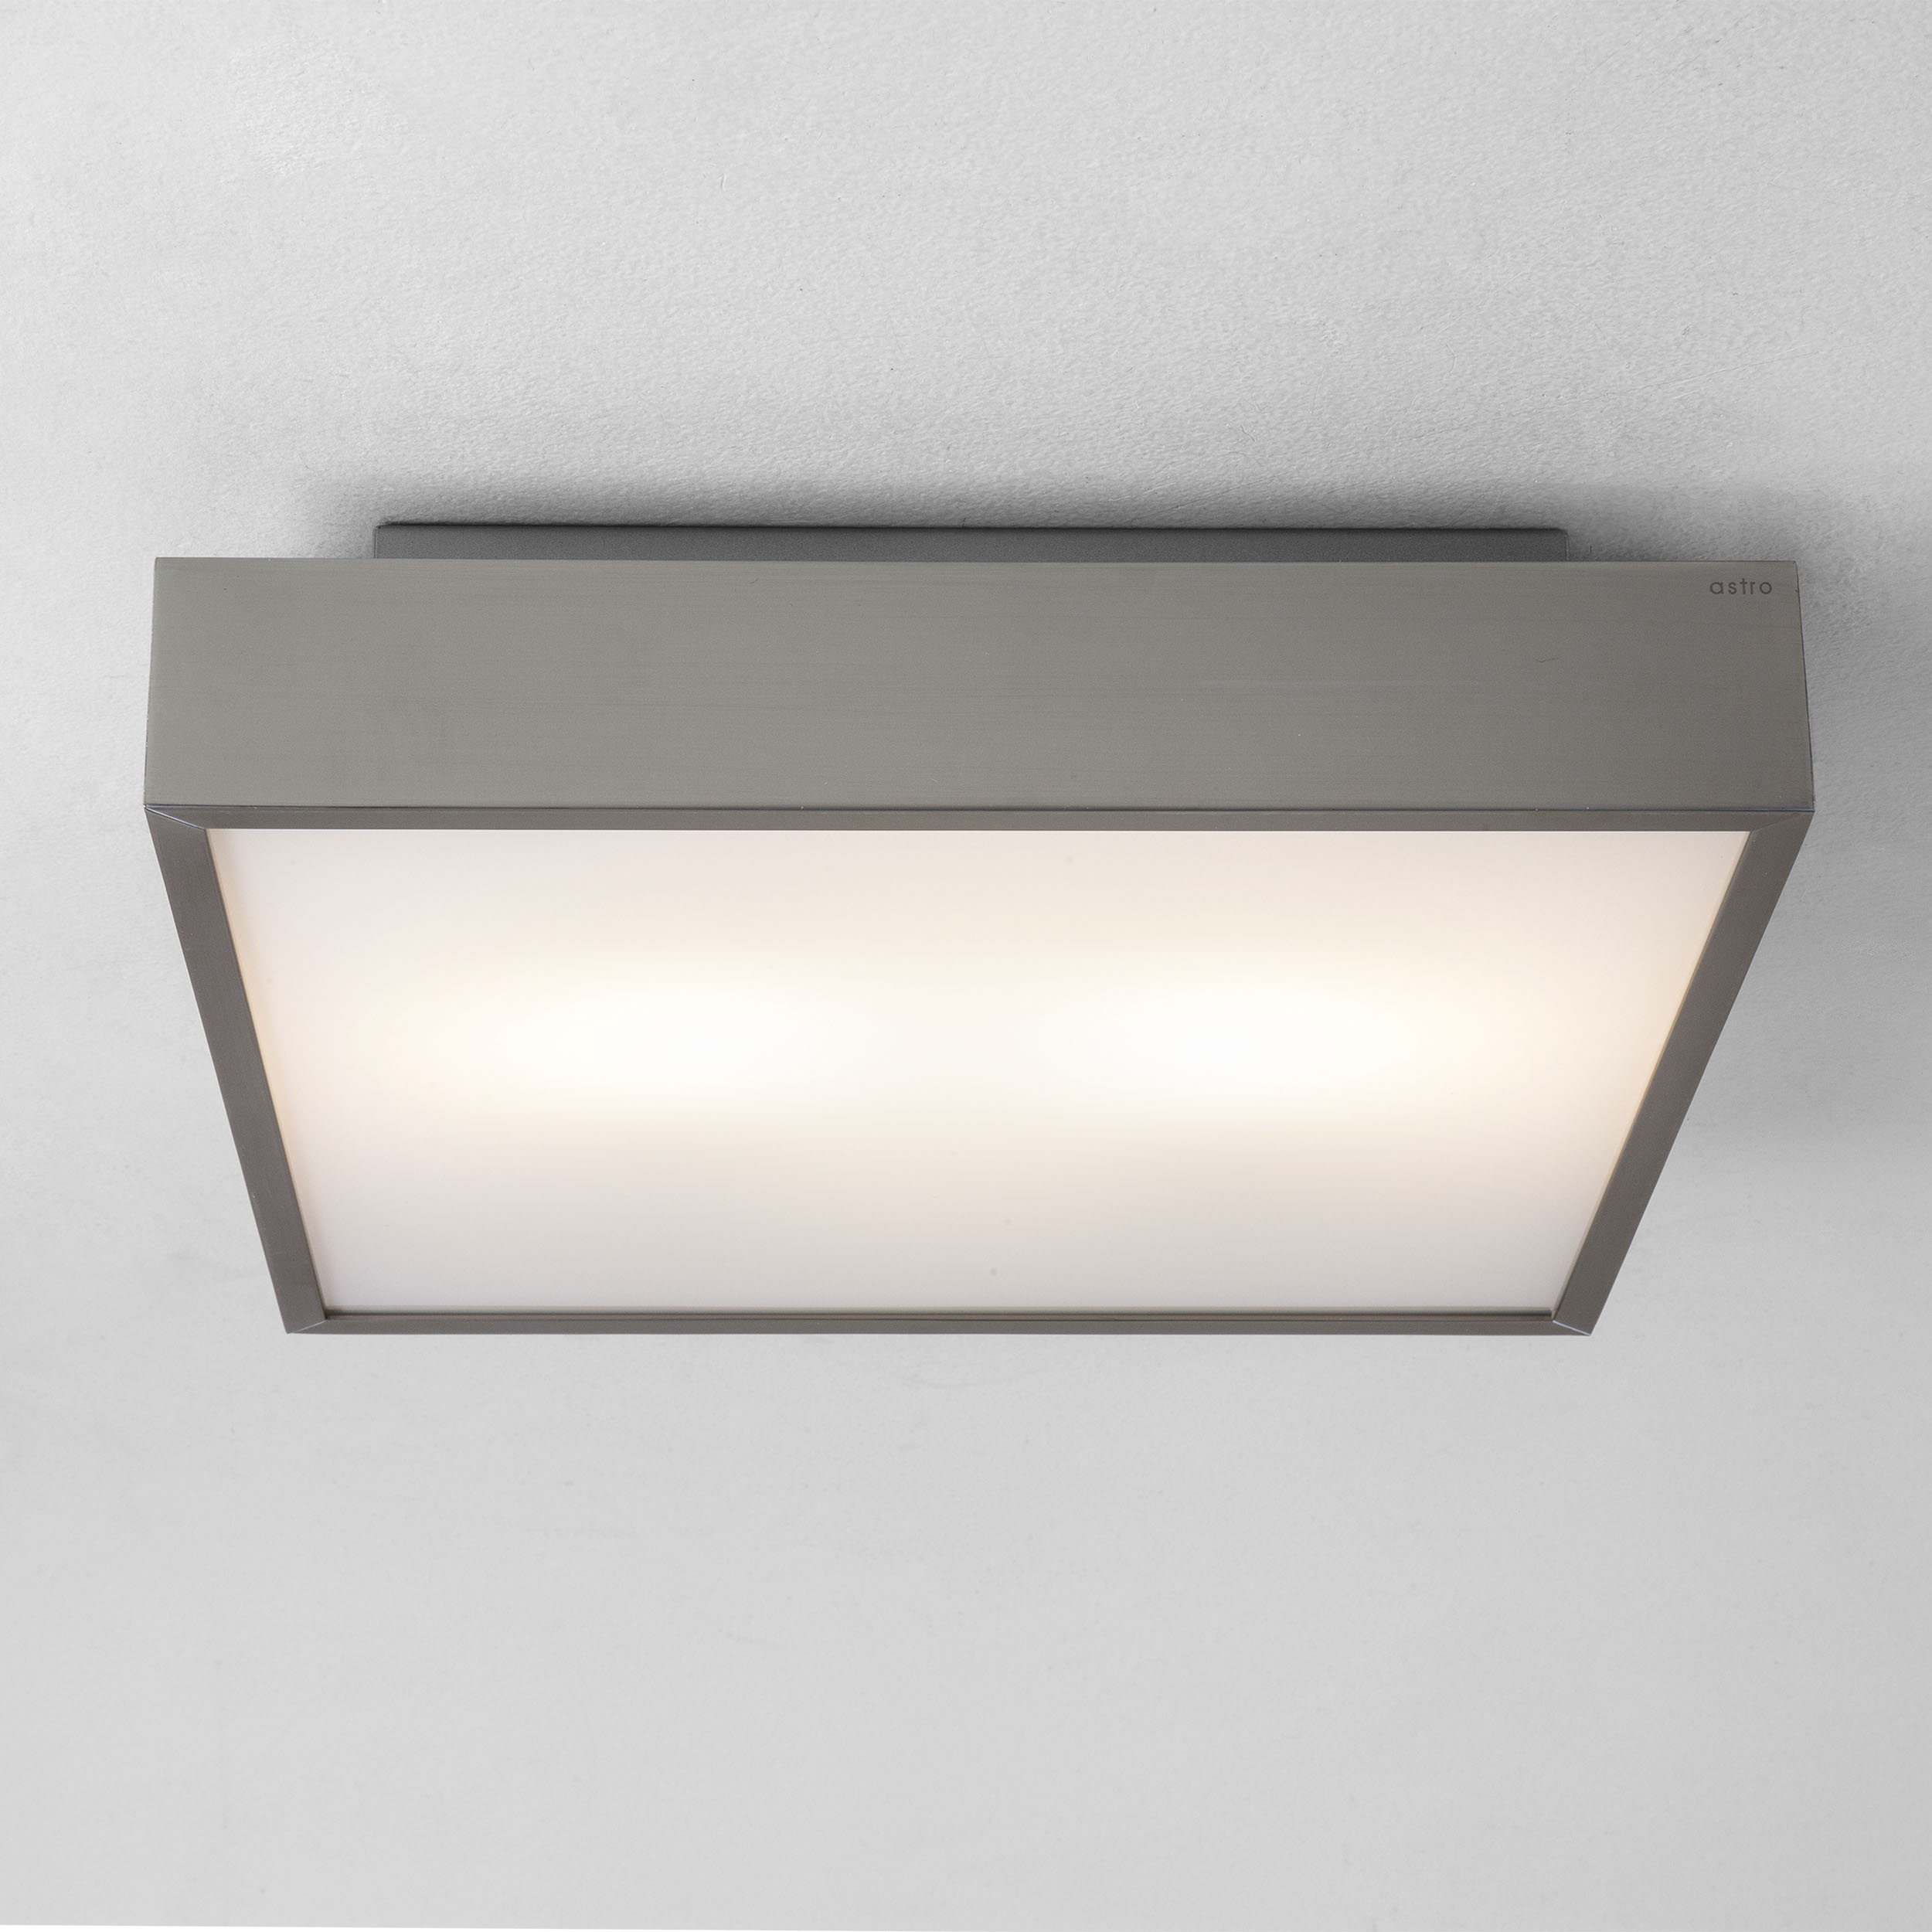 LED Square bathroom ceiling light 300 x 300 Astro Taketa 17.7W matt nickel IP44